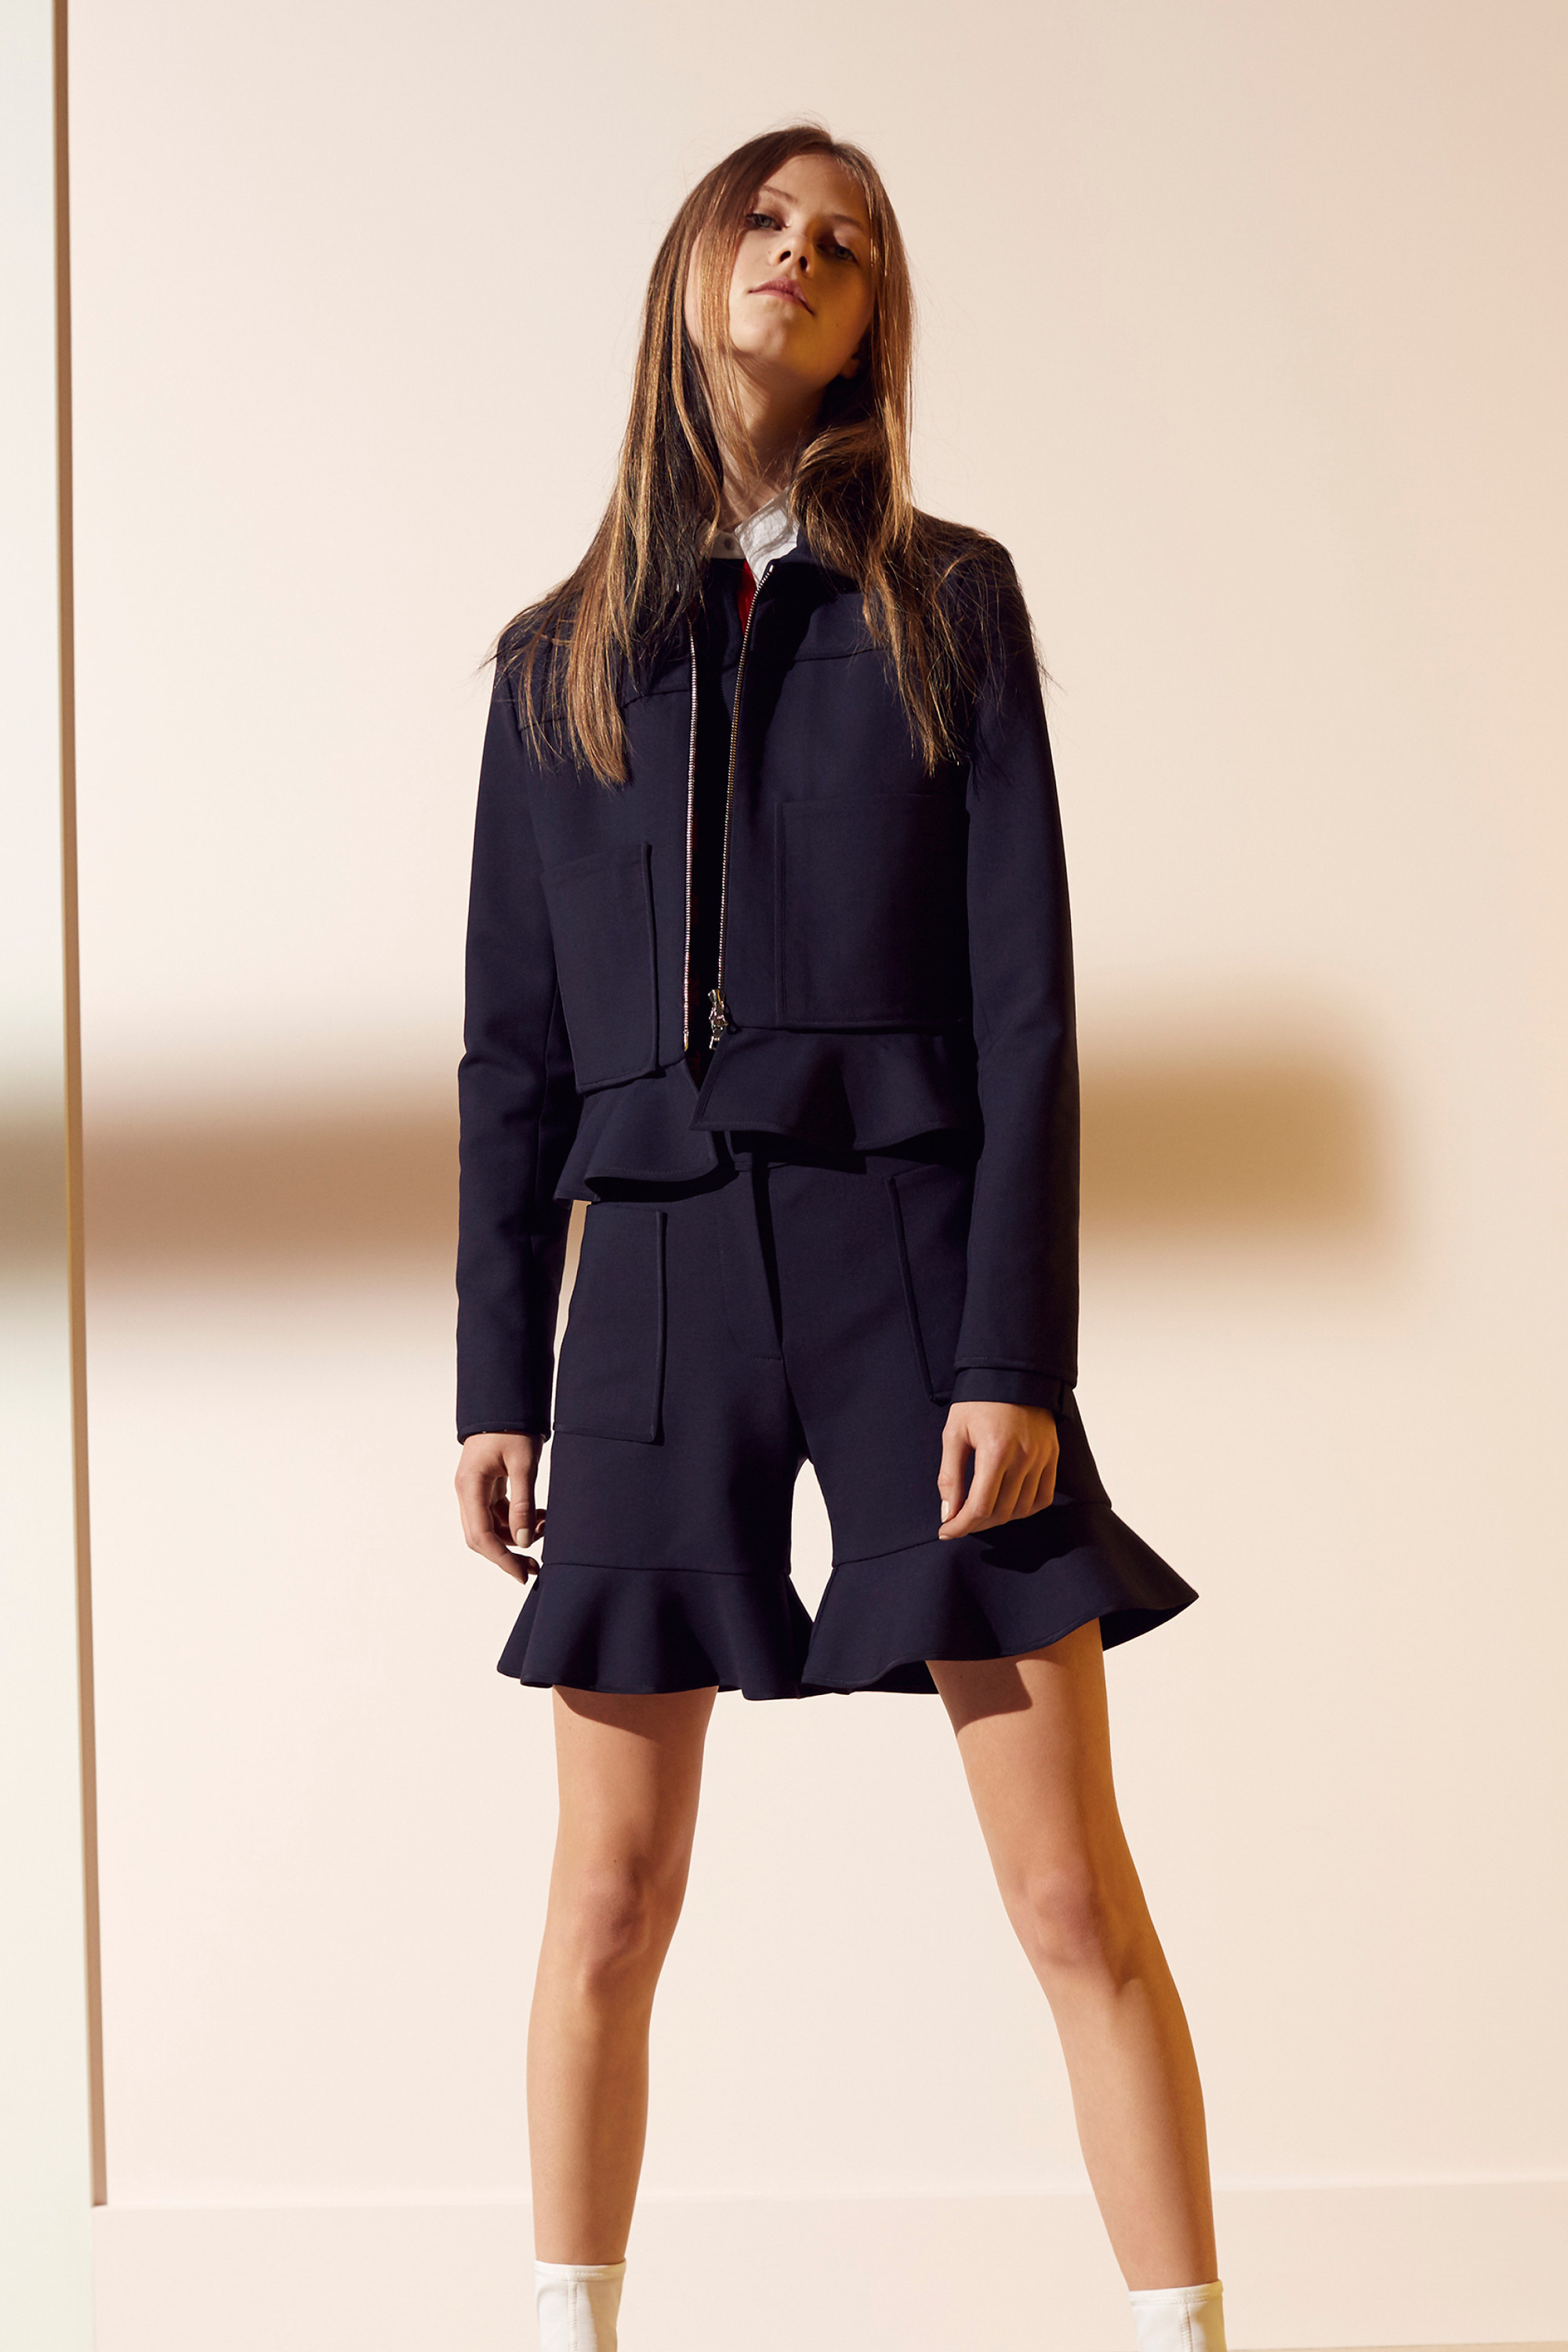 victoria-victoria-beckham-pre-fall-2016-lookbook-10.jpg